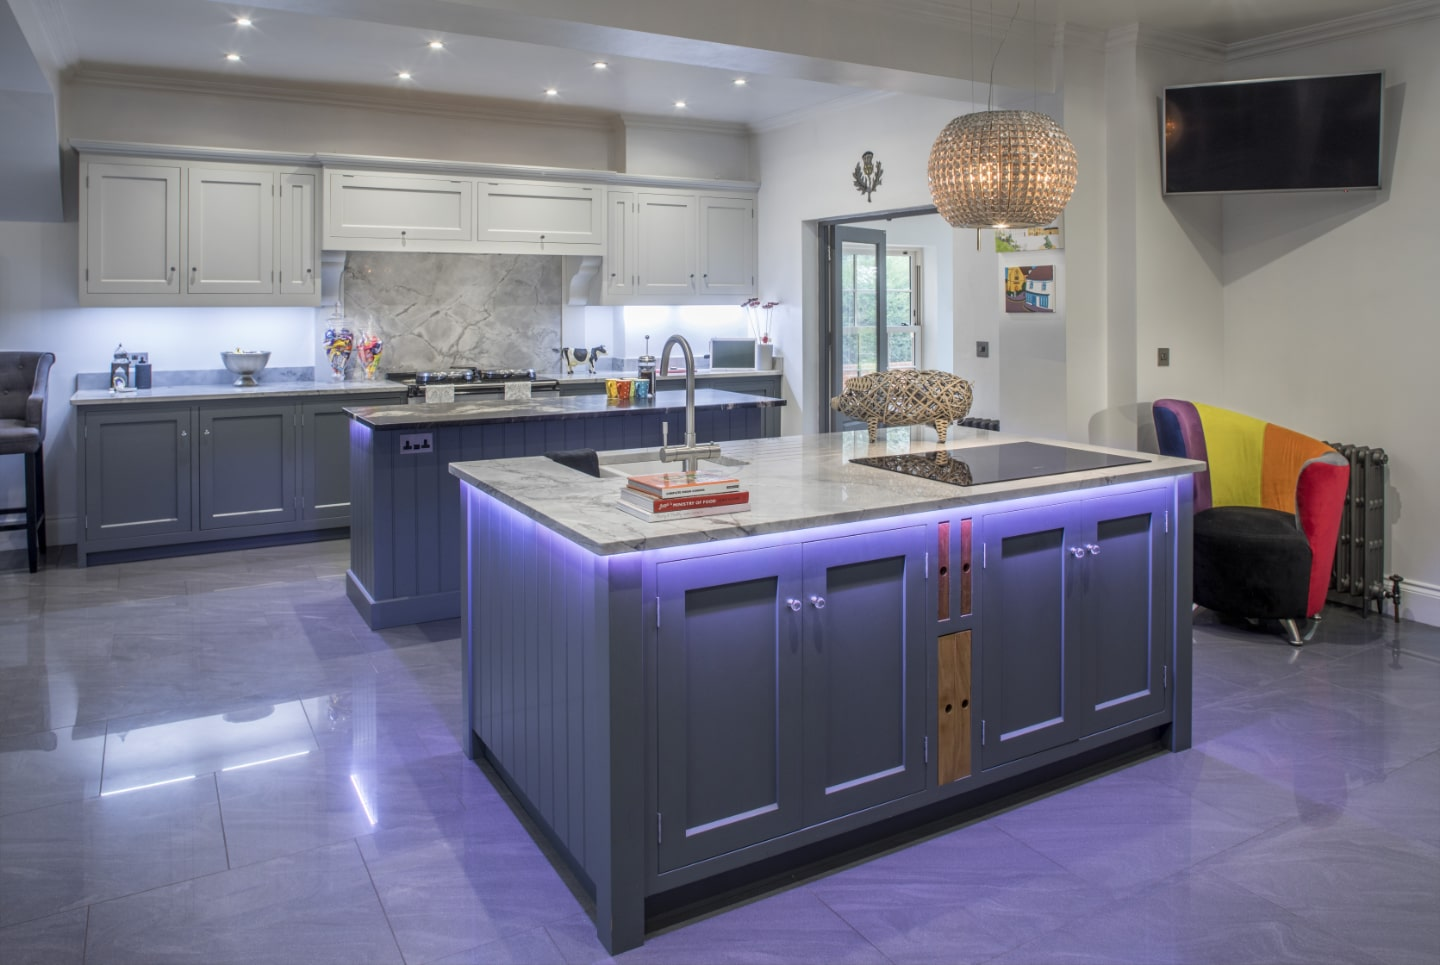 A bespoke kitchen with custom LED lighting under the work tops.